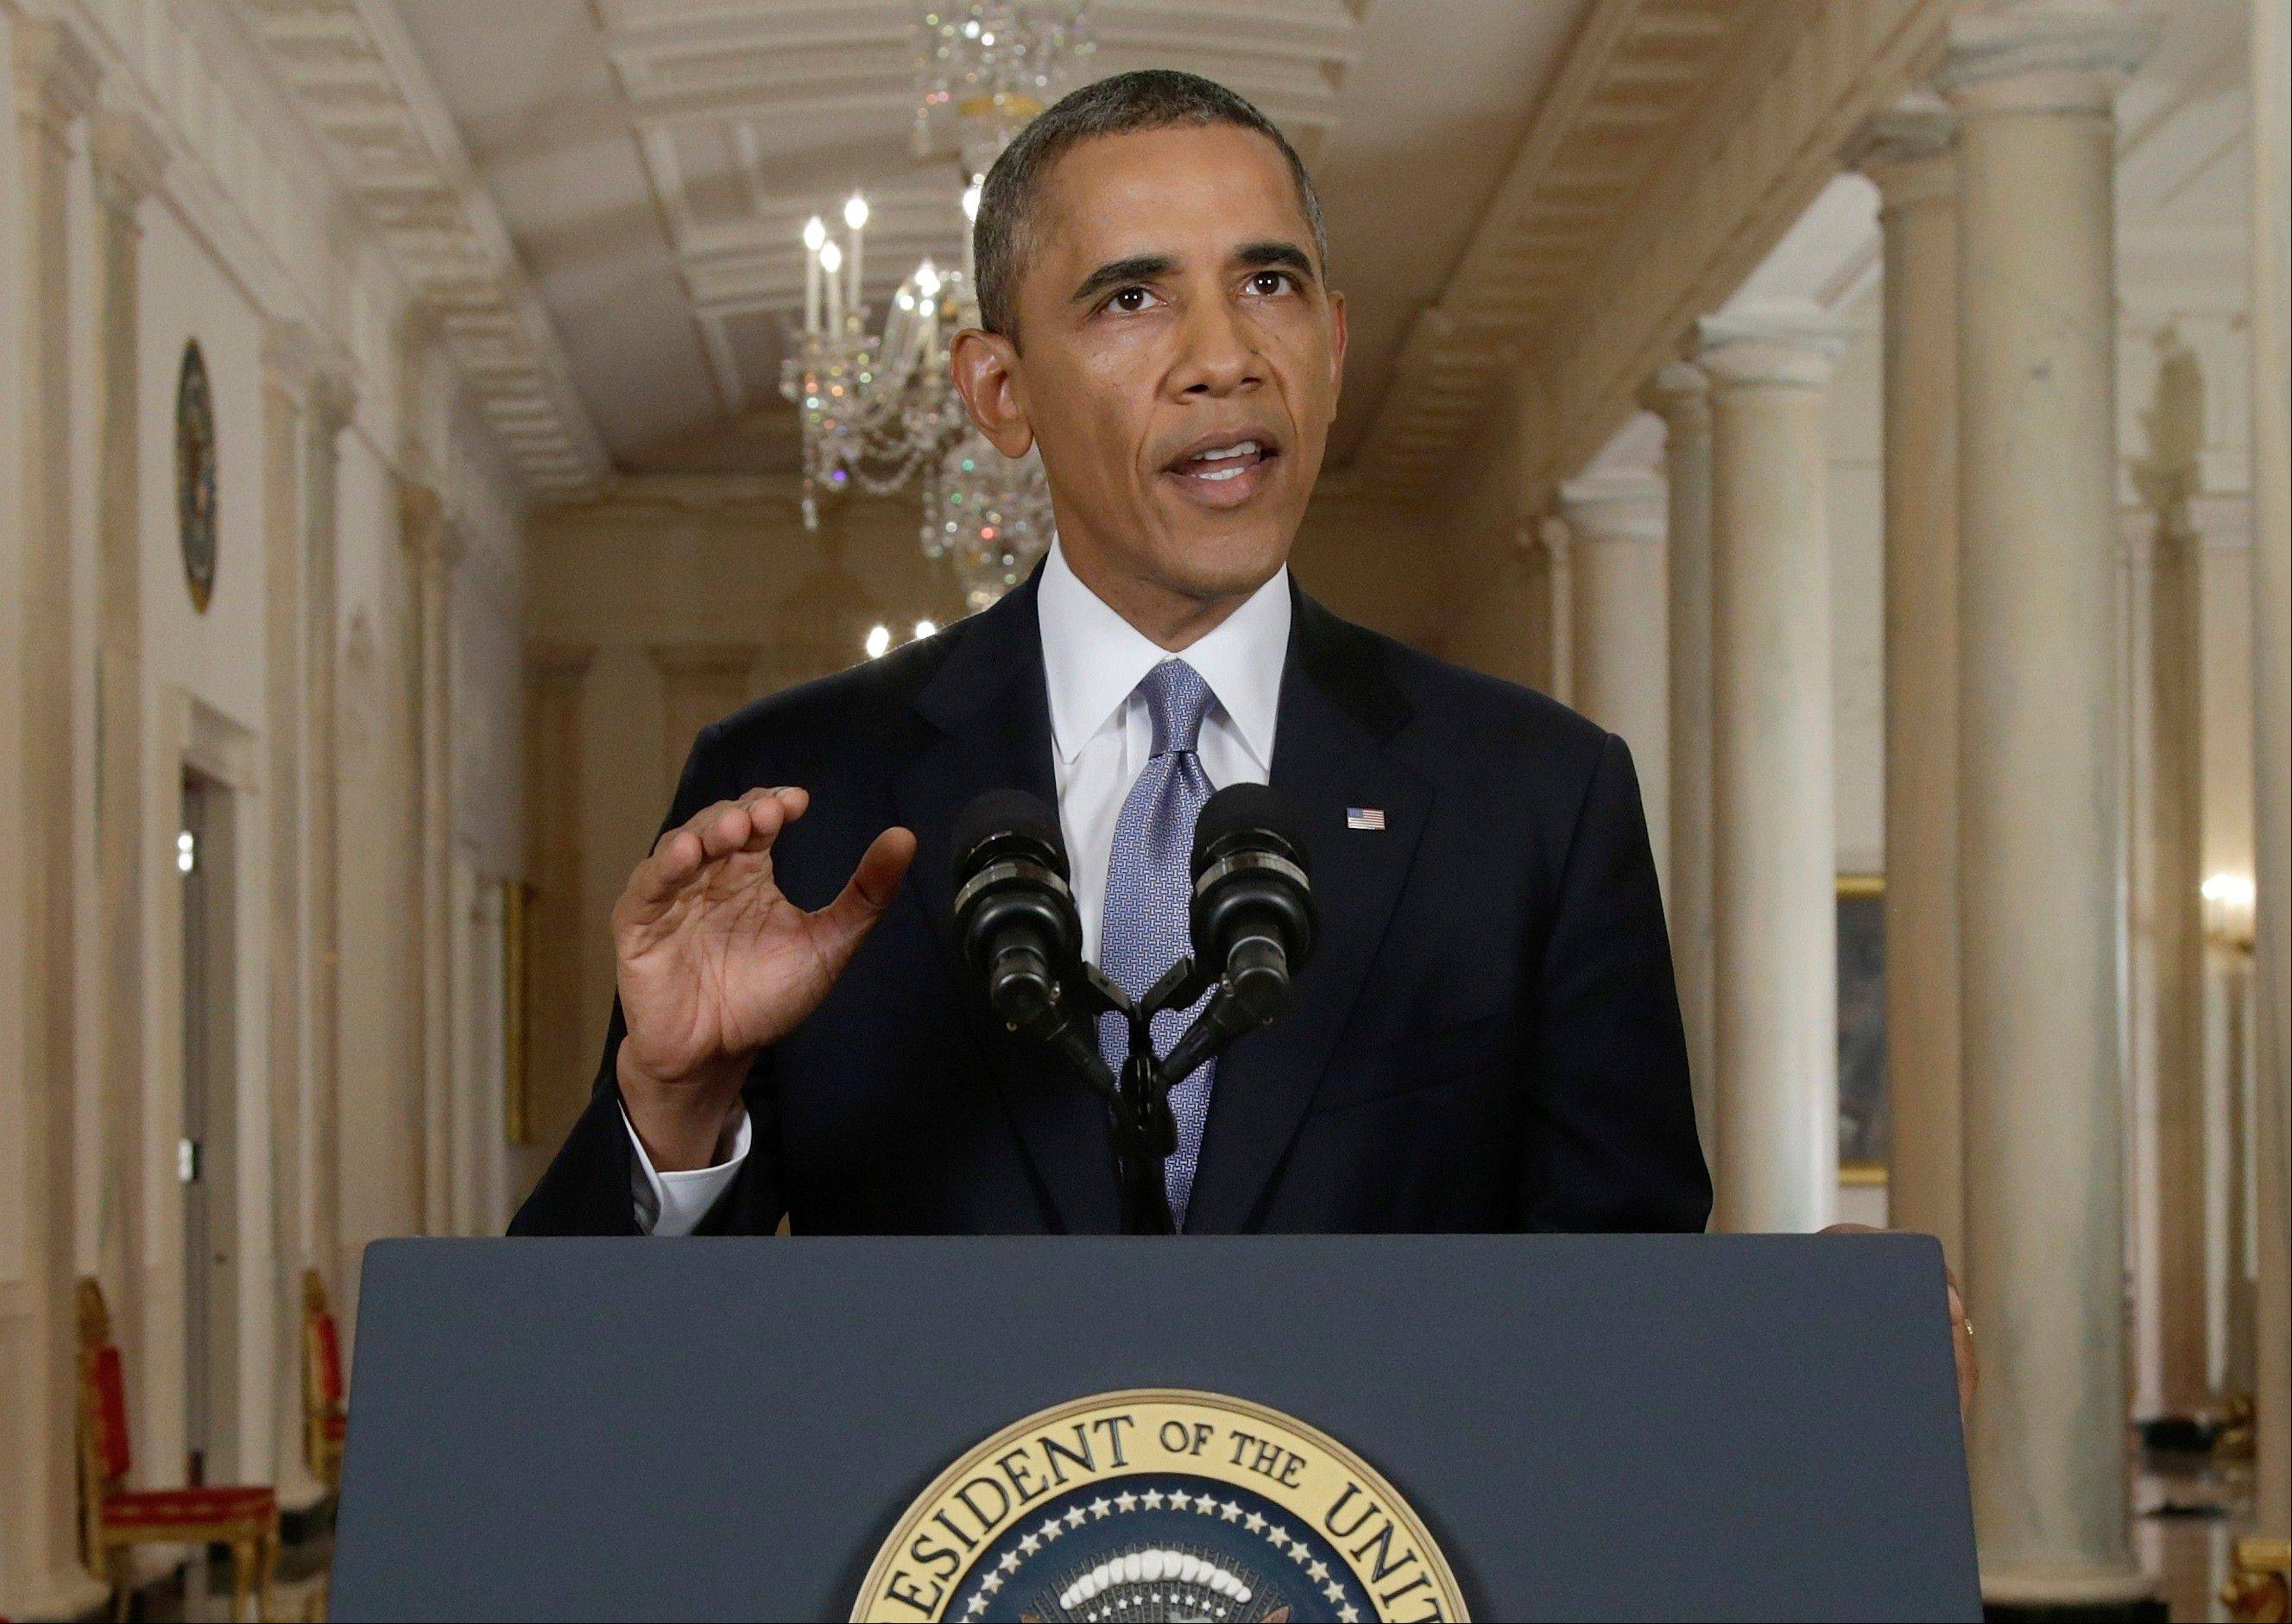 President Barack Obama addresses the nation in a live televised speech from the East Room of the White House in Washington. President Obama blended the threat of military action with the hope of a diplomatic solution as he works to strip Syria of its chemical weapons.